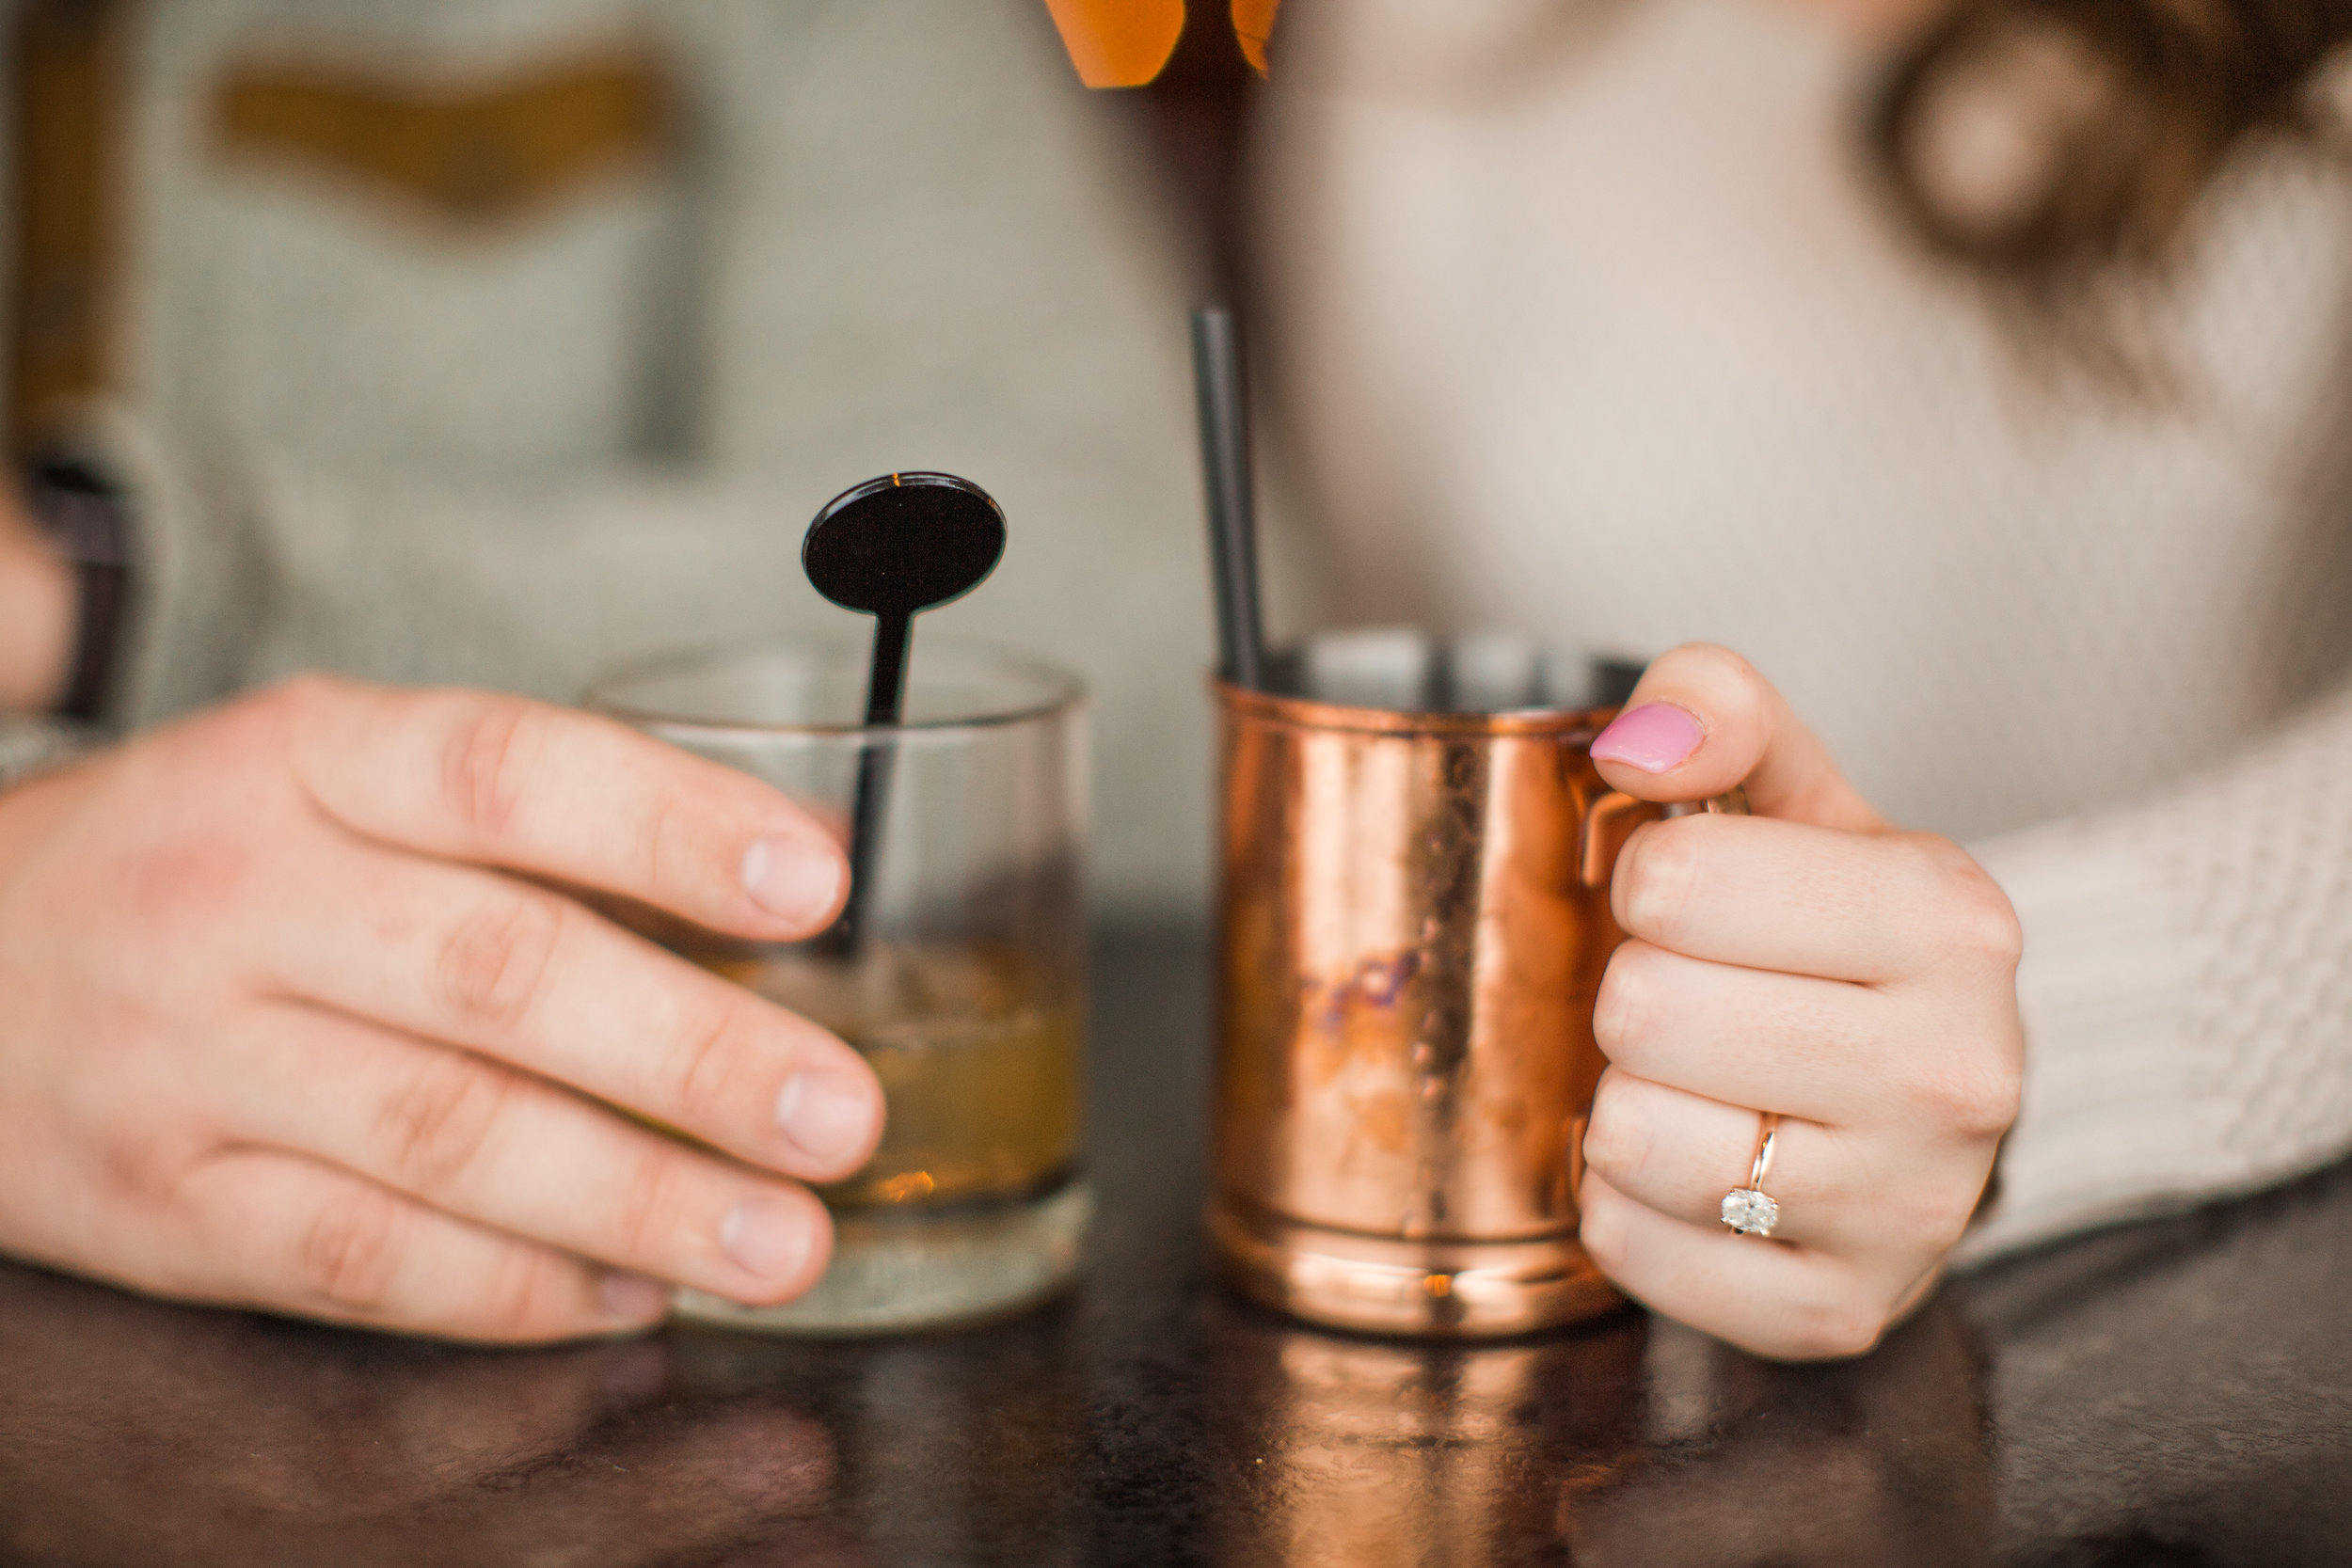 hands holding drink glasses whiskey Moscow mule engagement ring oval diamond rose gold ring